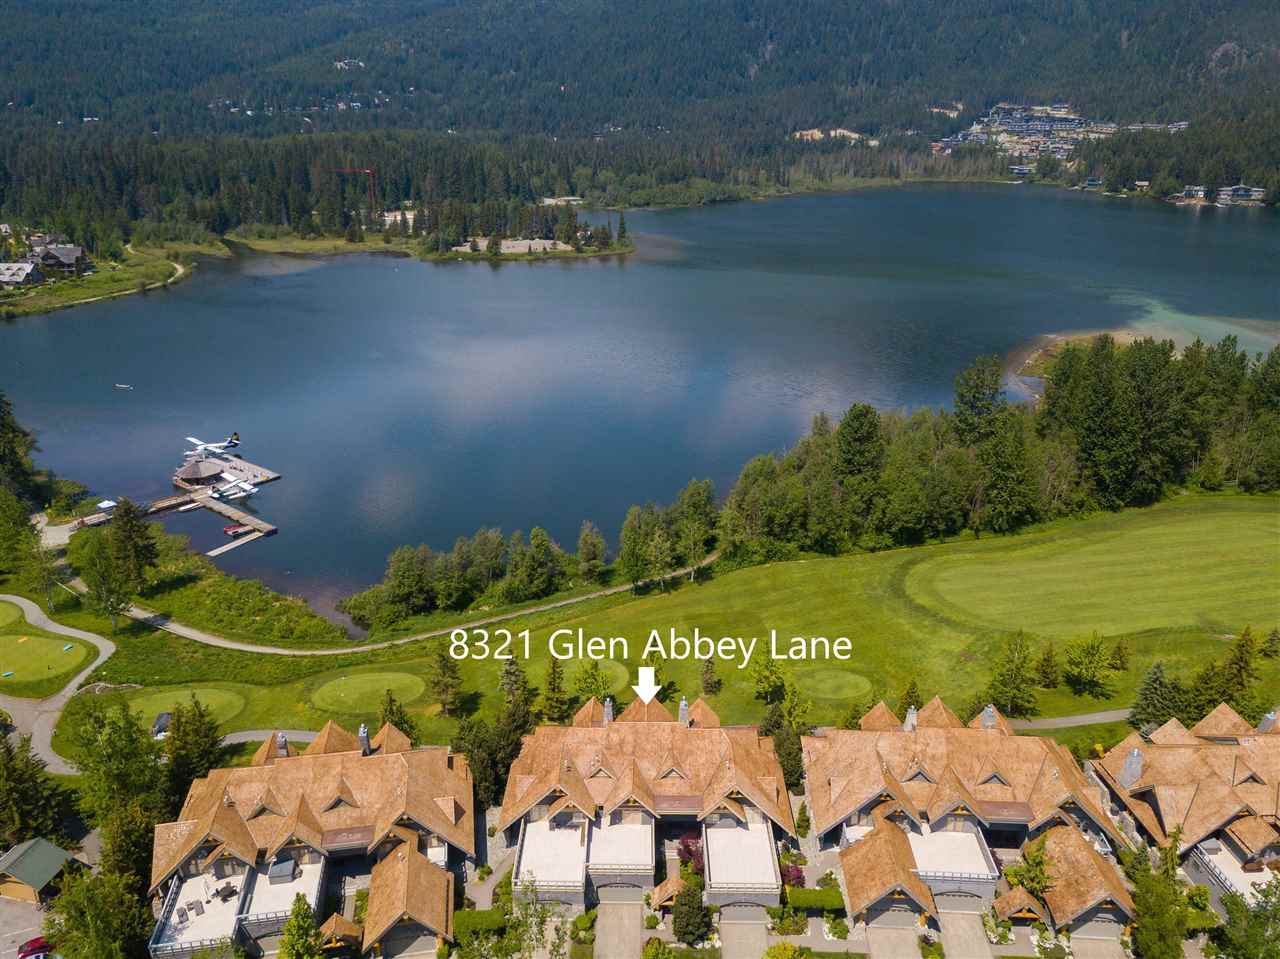 8321 GLEN ABBEY LANE - MLS® # R2376052